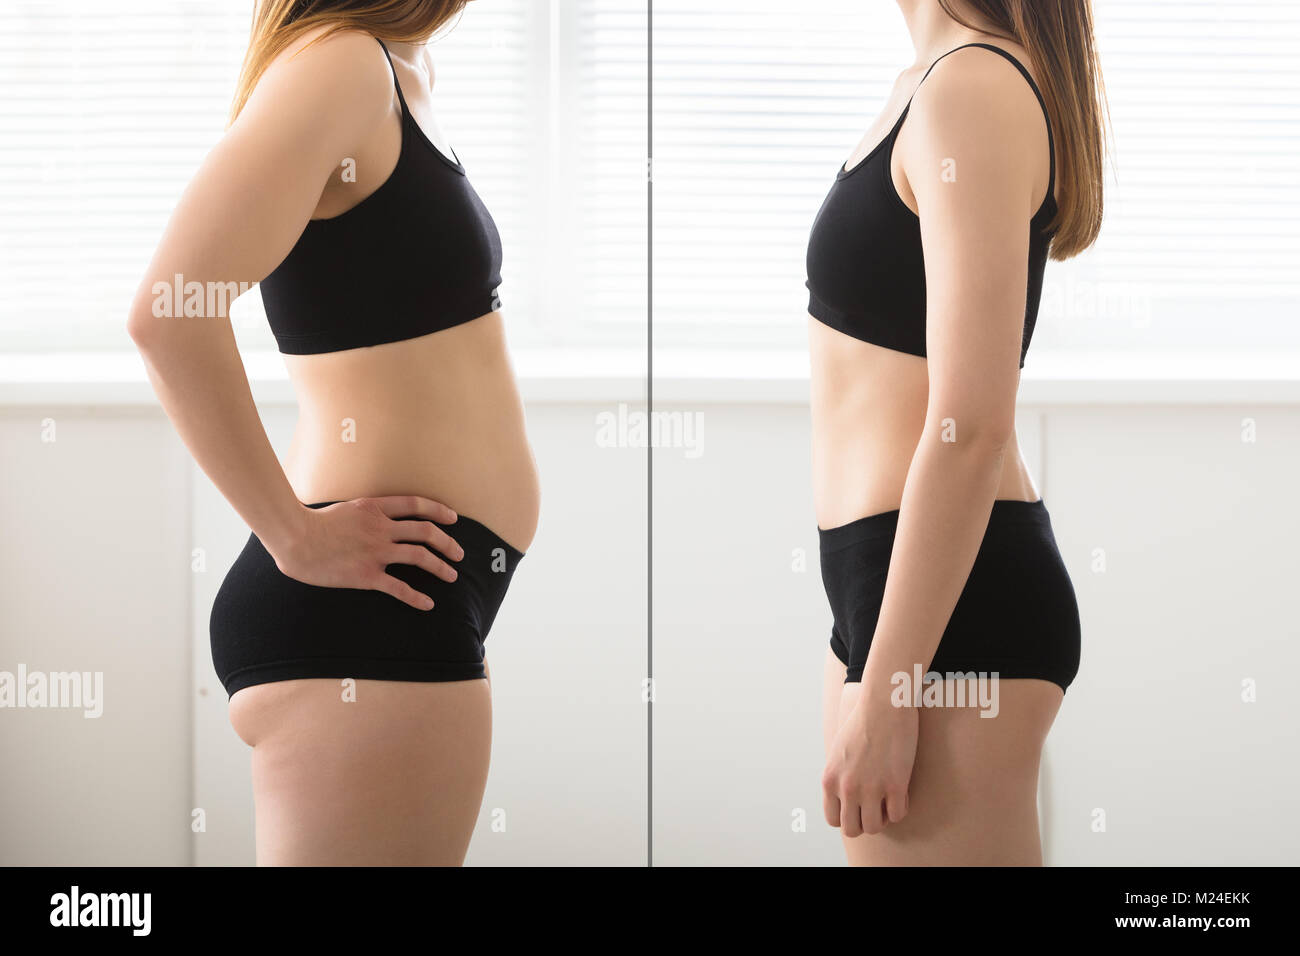 Obese Fat Woman Black Photos   Obese Fat Woman Black Images - Alamy 86f5bc30166